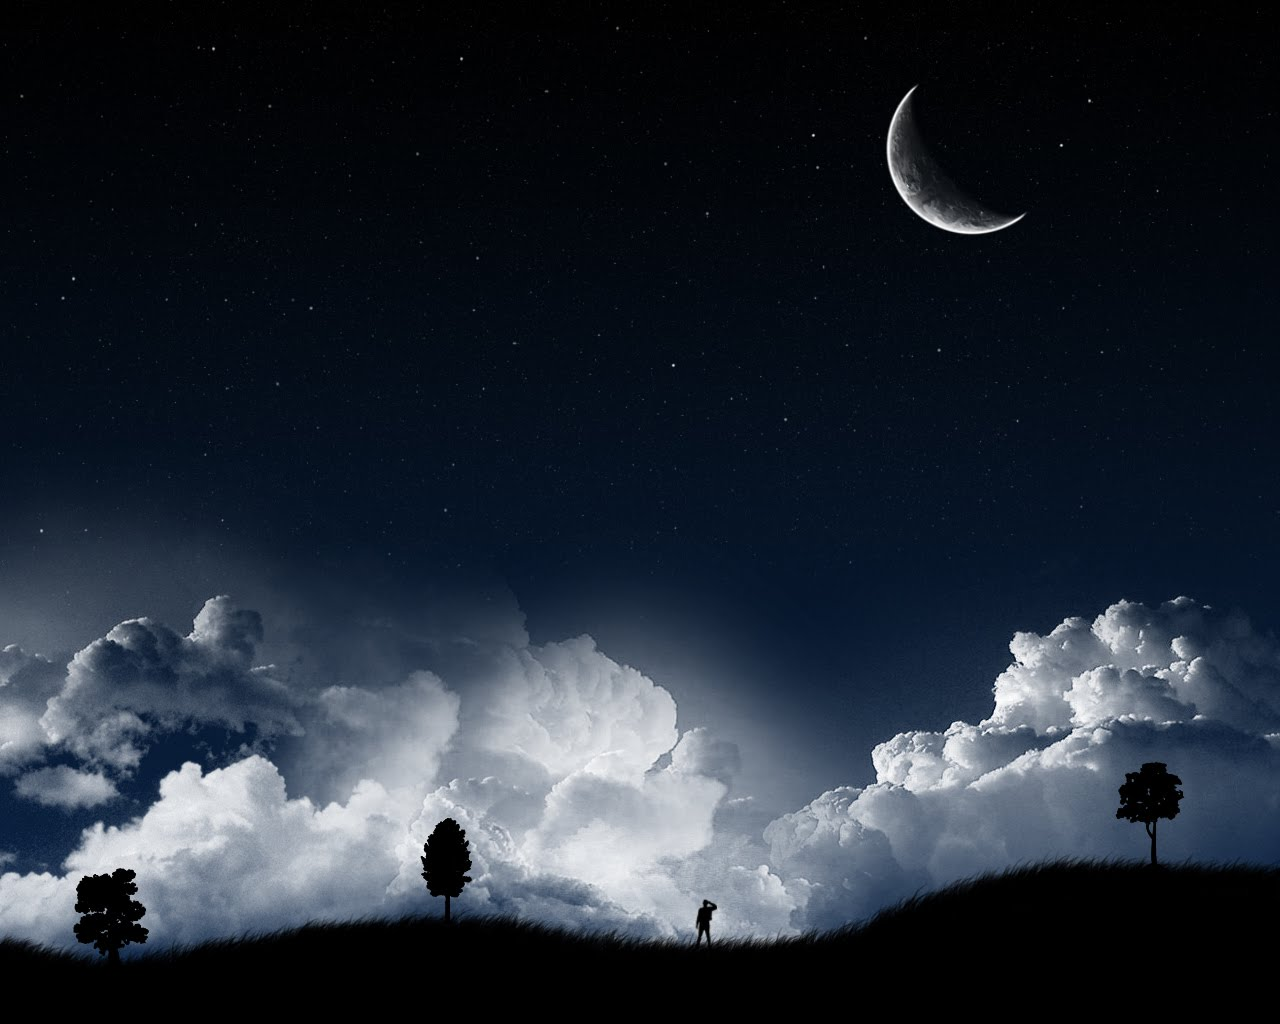 http://3.bp.blogspot.com/_yWHzmyaULtg/TTUNtFLL5qI/AAAAAAAAAC0/QflCbV8TuaQ/s1600/A_Dark_Starry_Night_Wallpaper_by_s3vendays.jpg